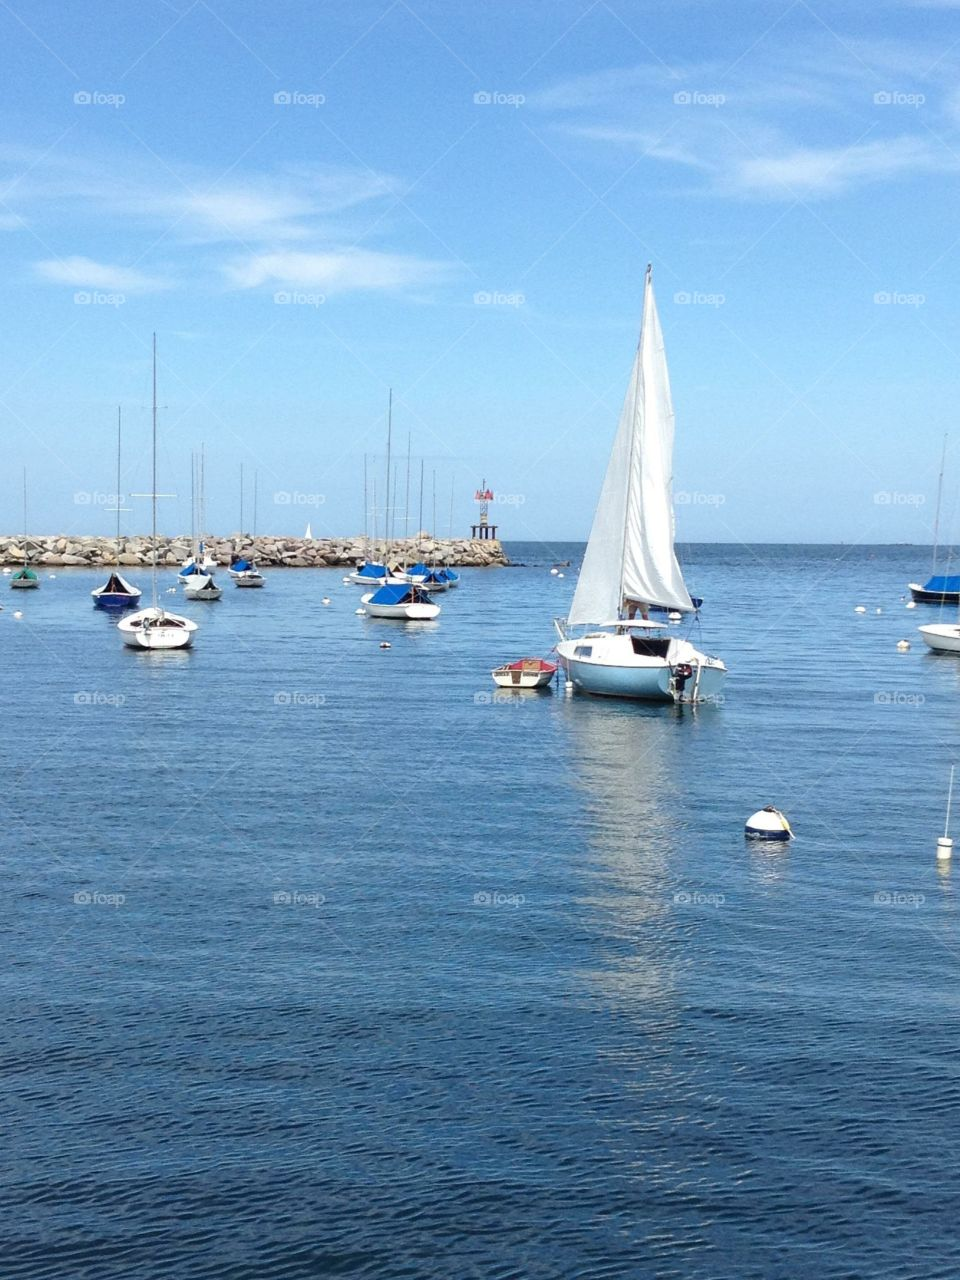 Rockport, MA harbor . Beautiful evening in Rockport